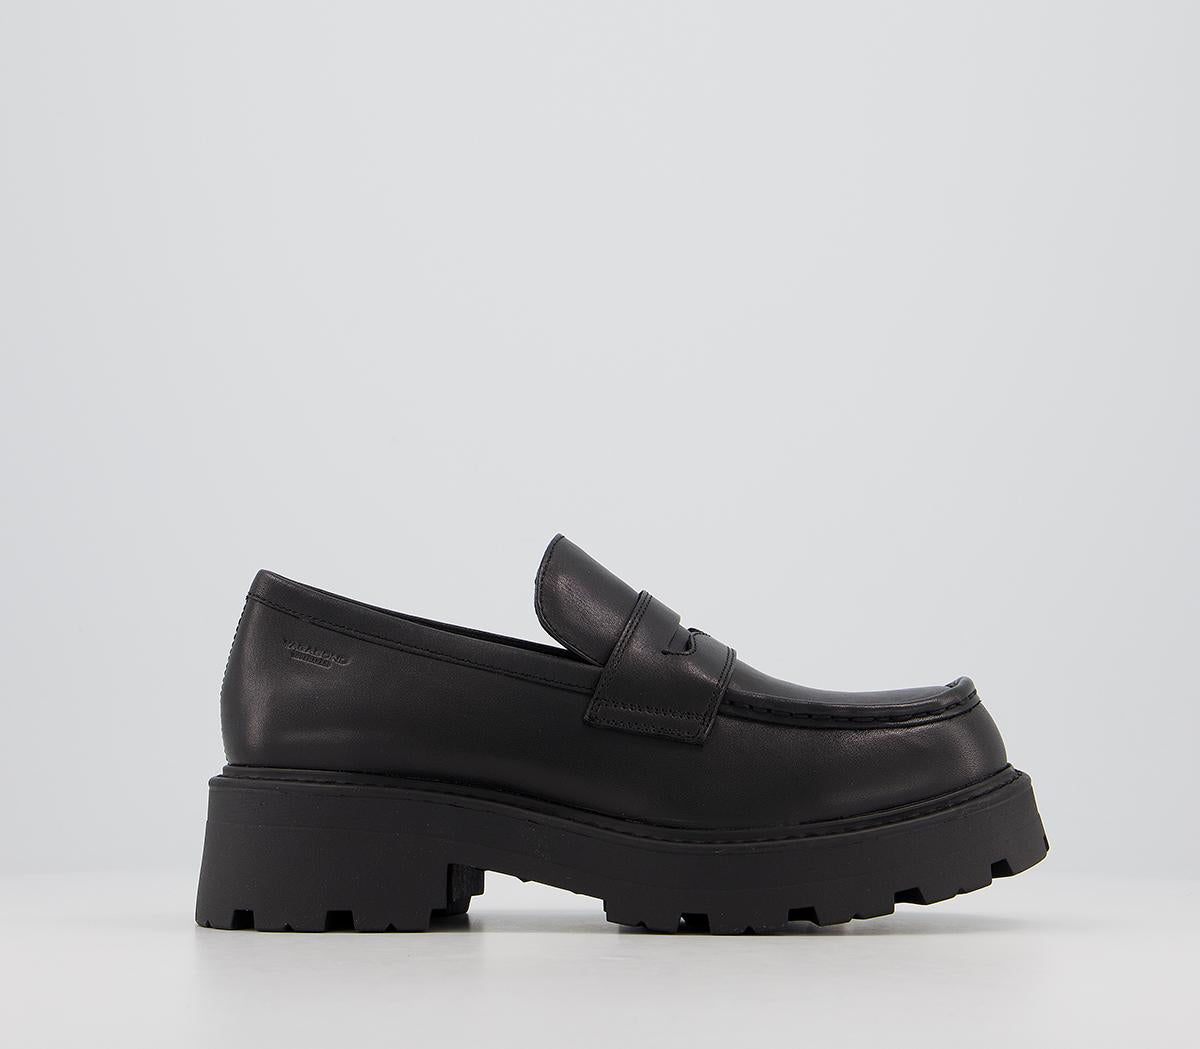 Womens Vagabond Cosmo Loafers Black Leather